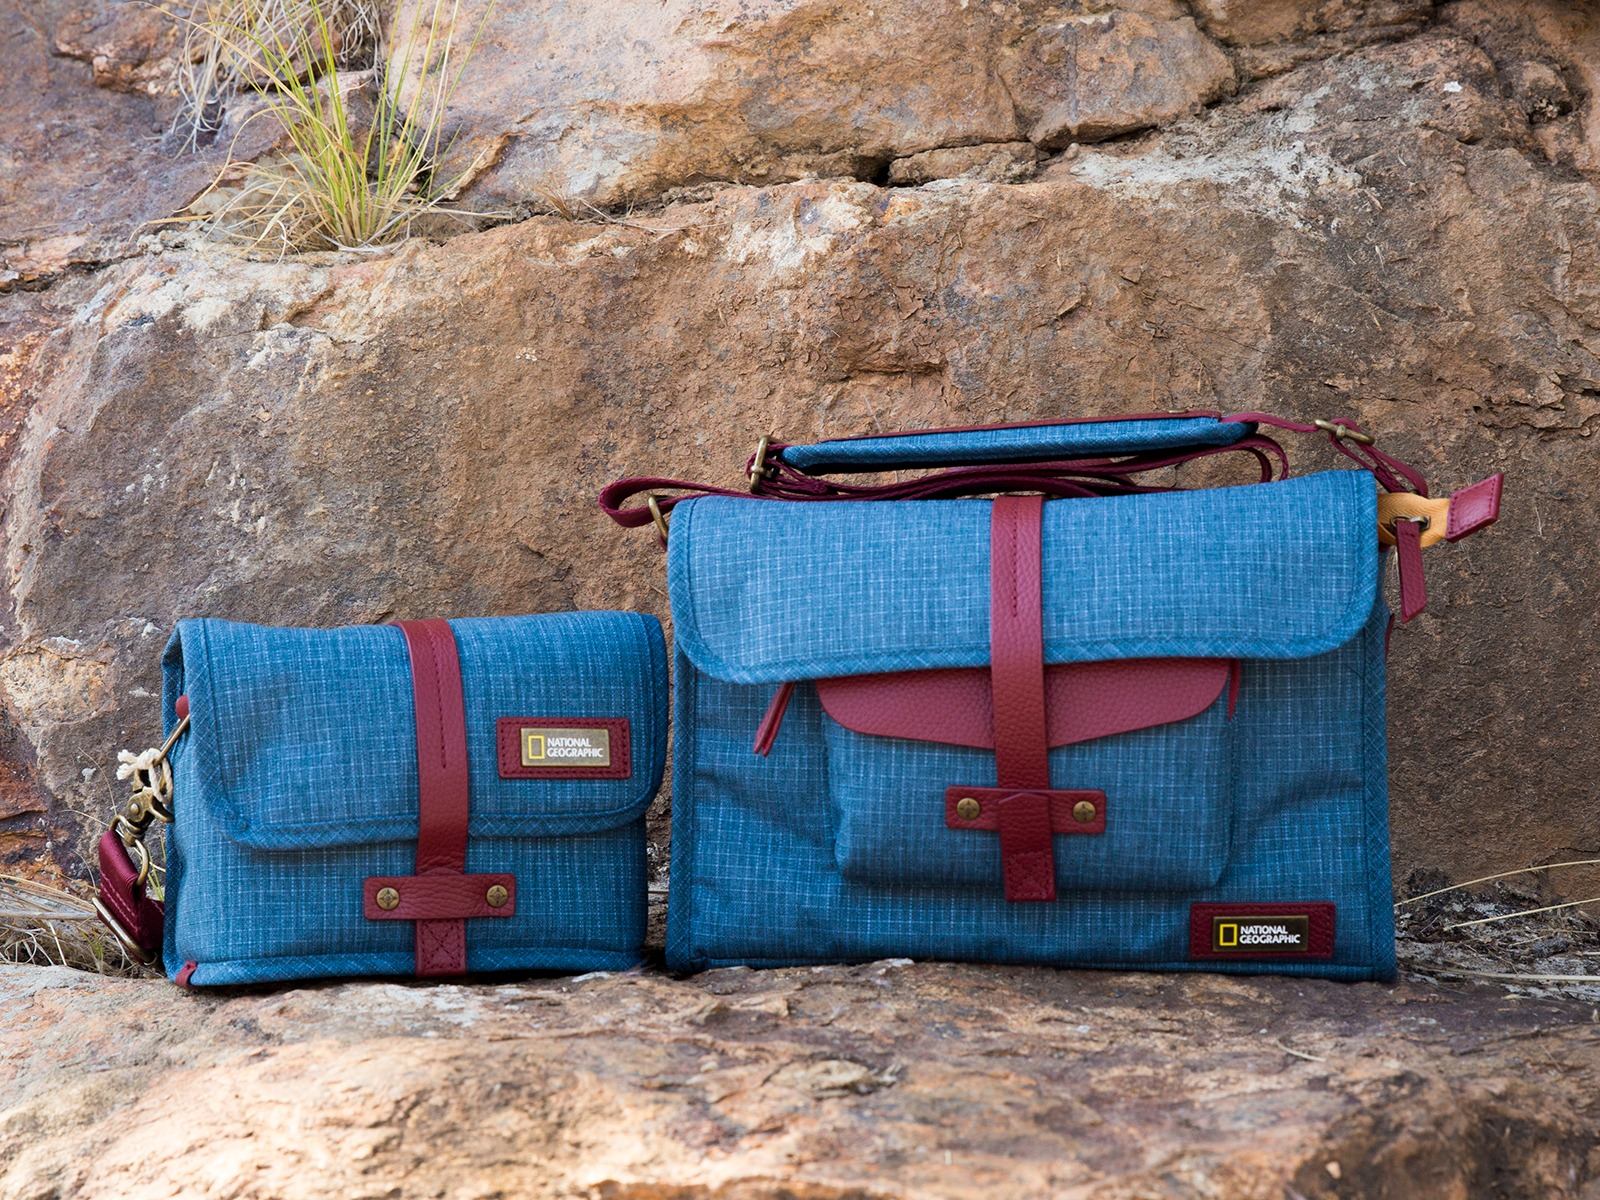 Manfrotto national geographic messenger bags